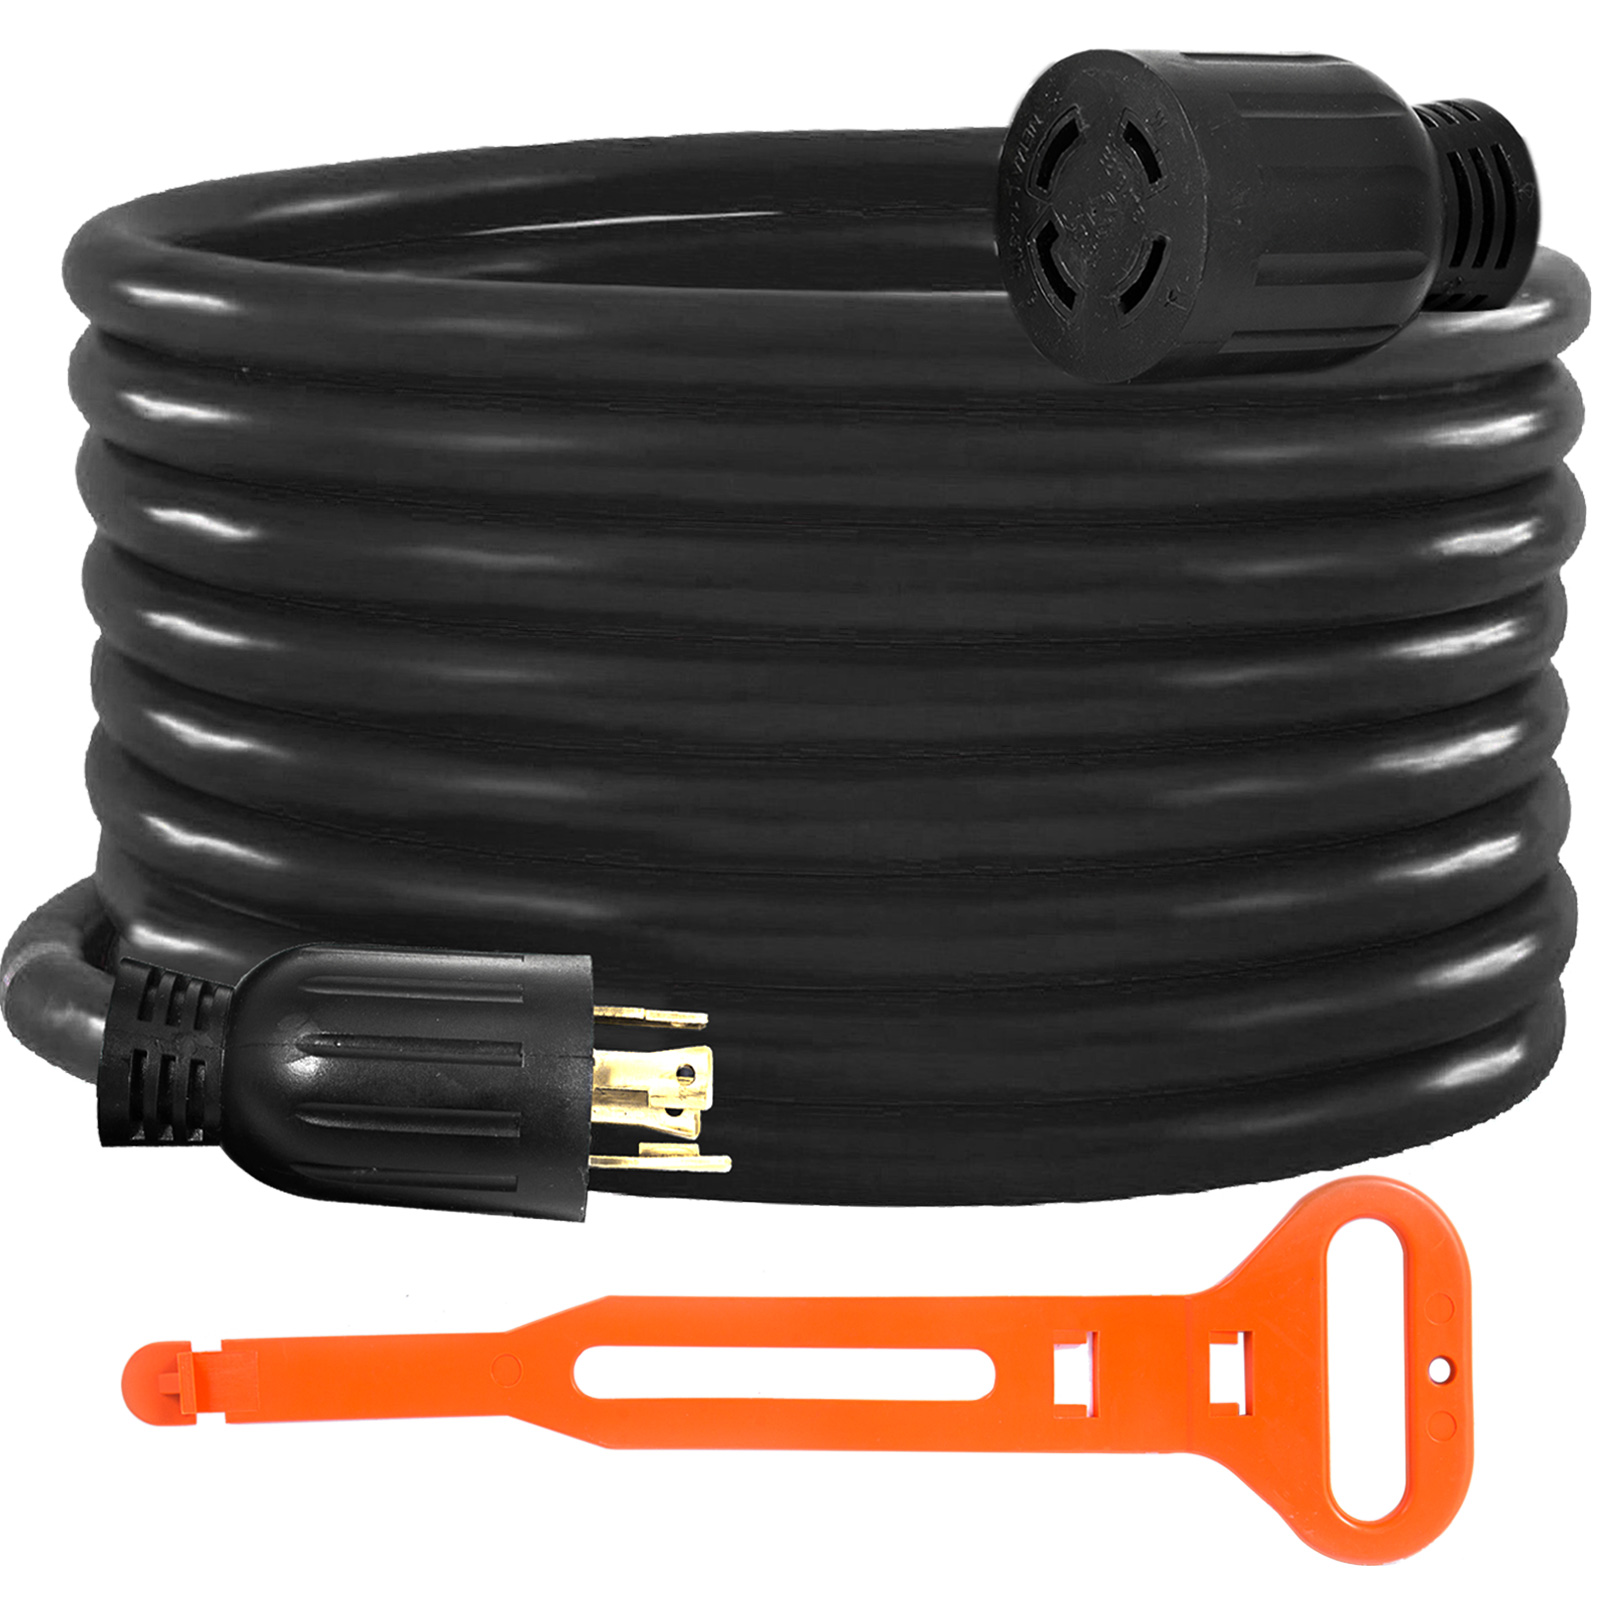 10FT Generator Extension Cord 50Amp 125//250V 14-50P to CS6364 Locking Connector